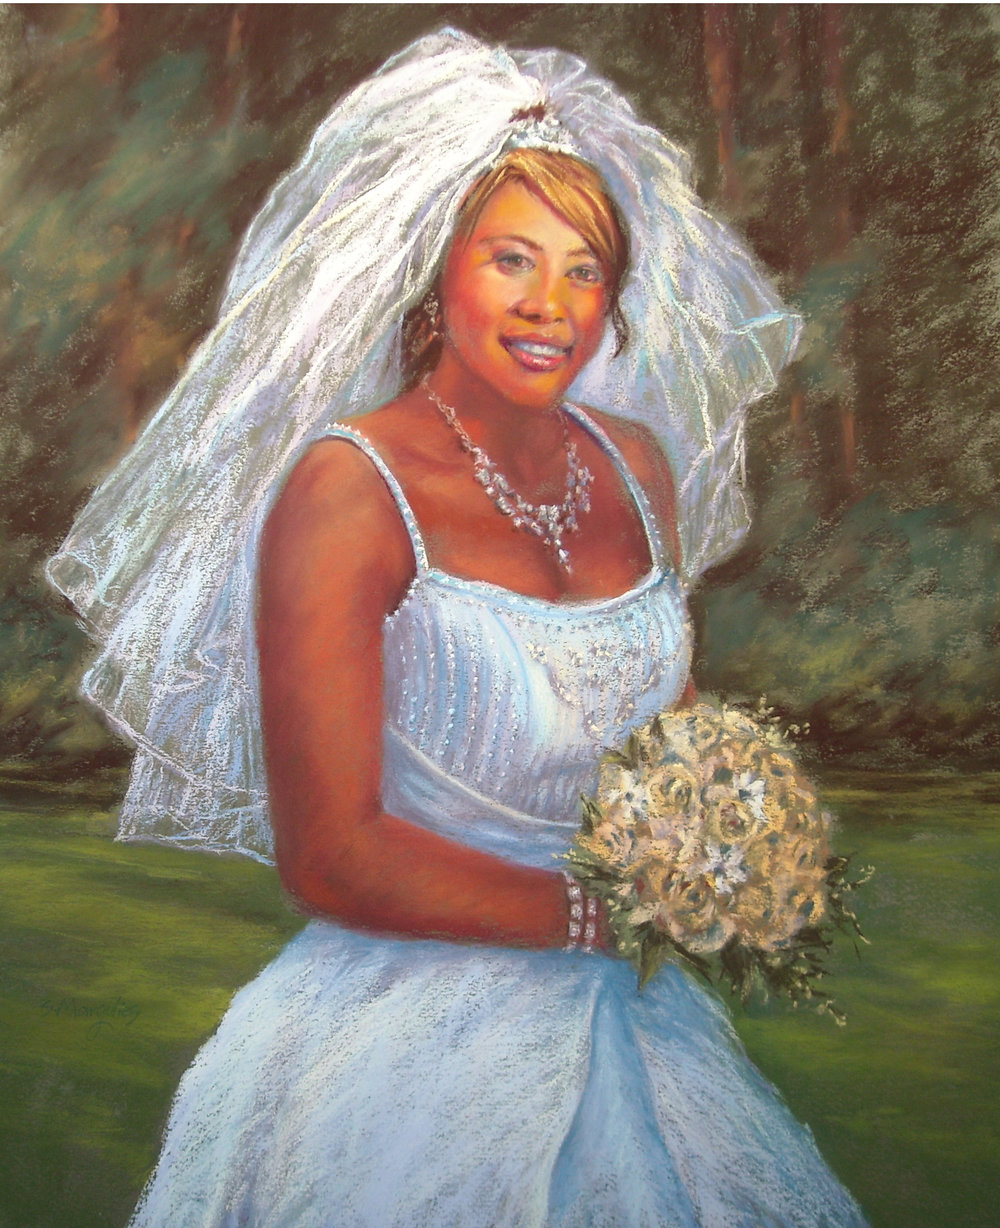 Portrait of a Bride.jpg